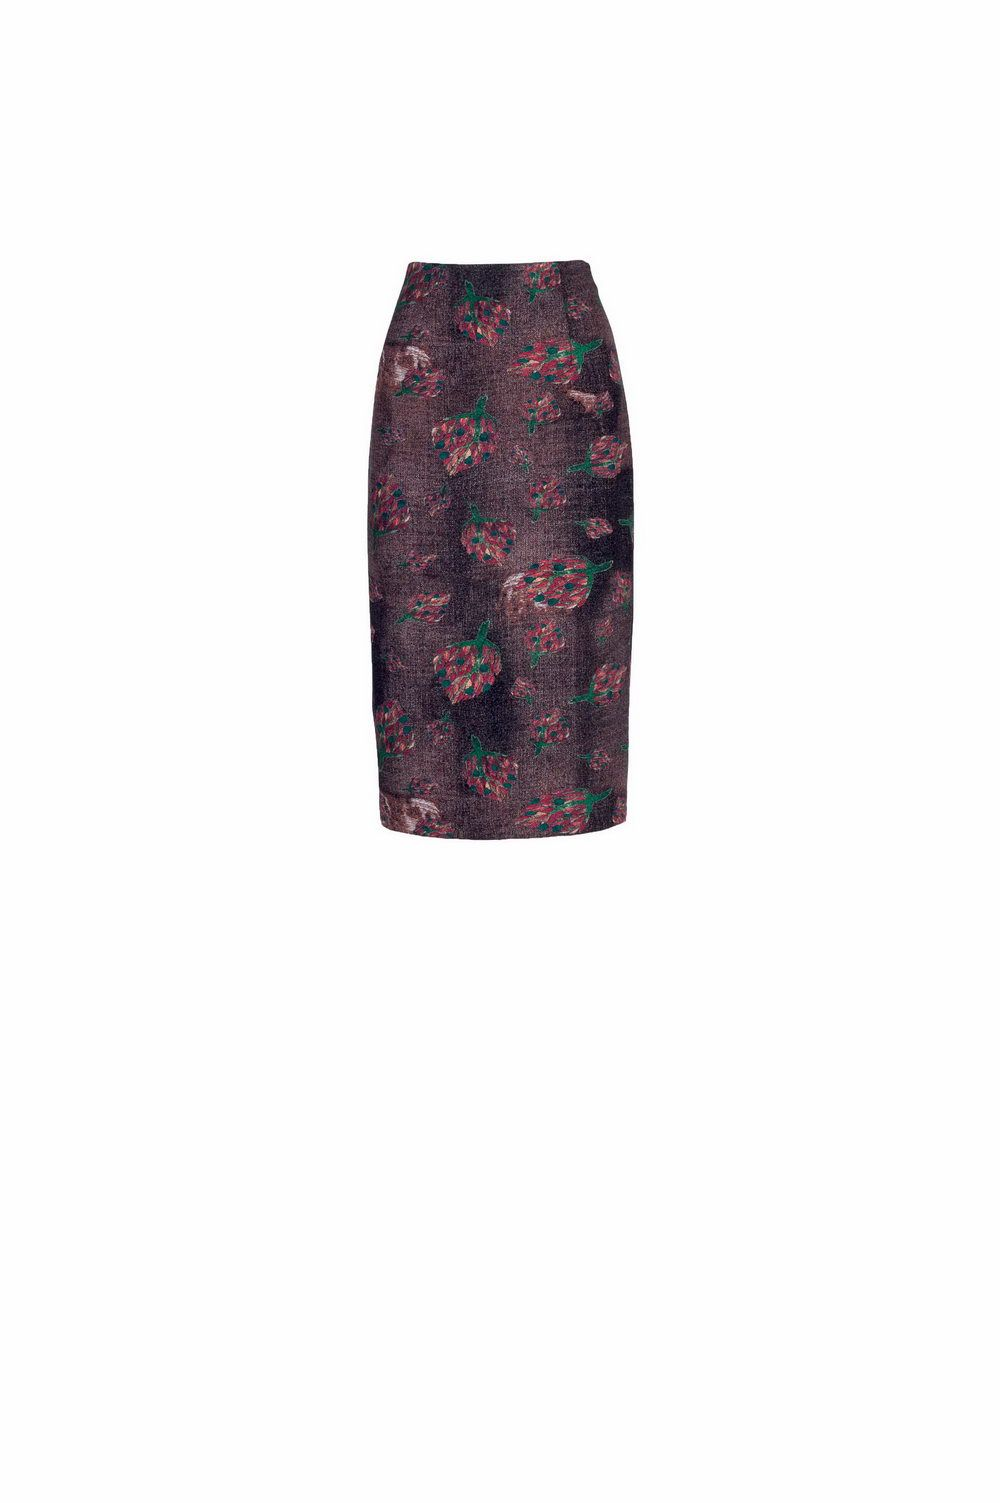 AnonymeDesigners_R139FS077 - Skirt - PVP 94,20€_resize